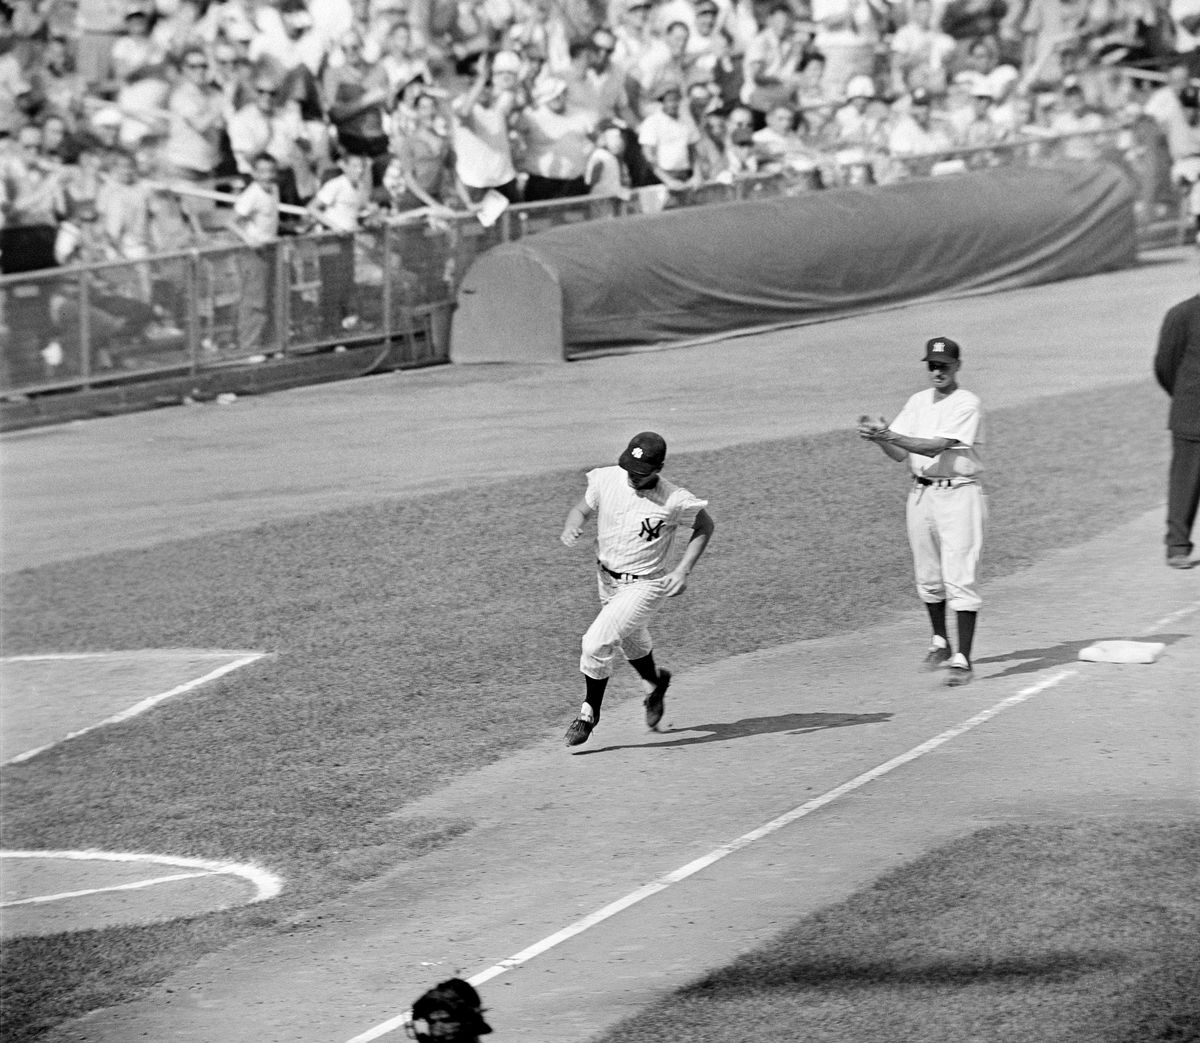 Roger Maris heads for home after hitting his record-breaking 61st home run in 1961.